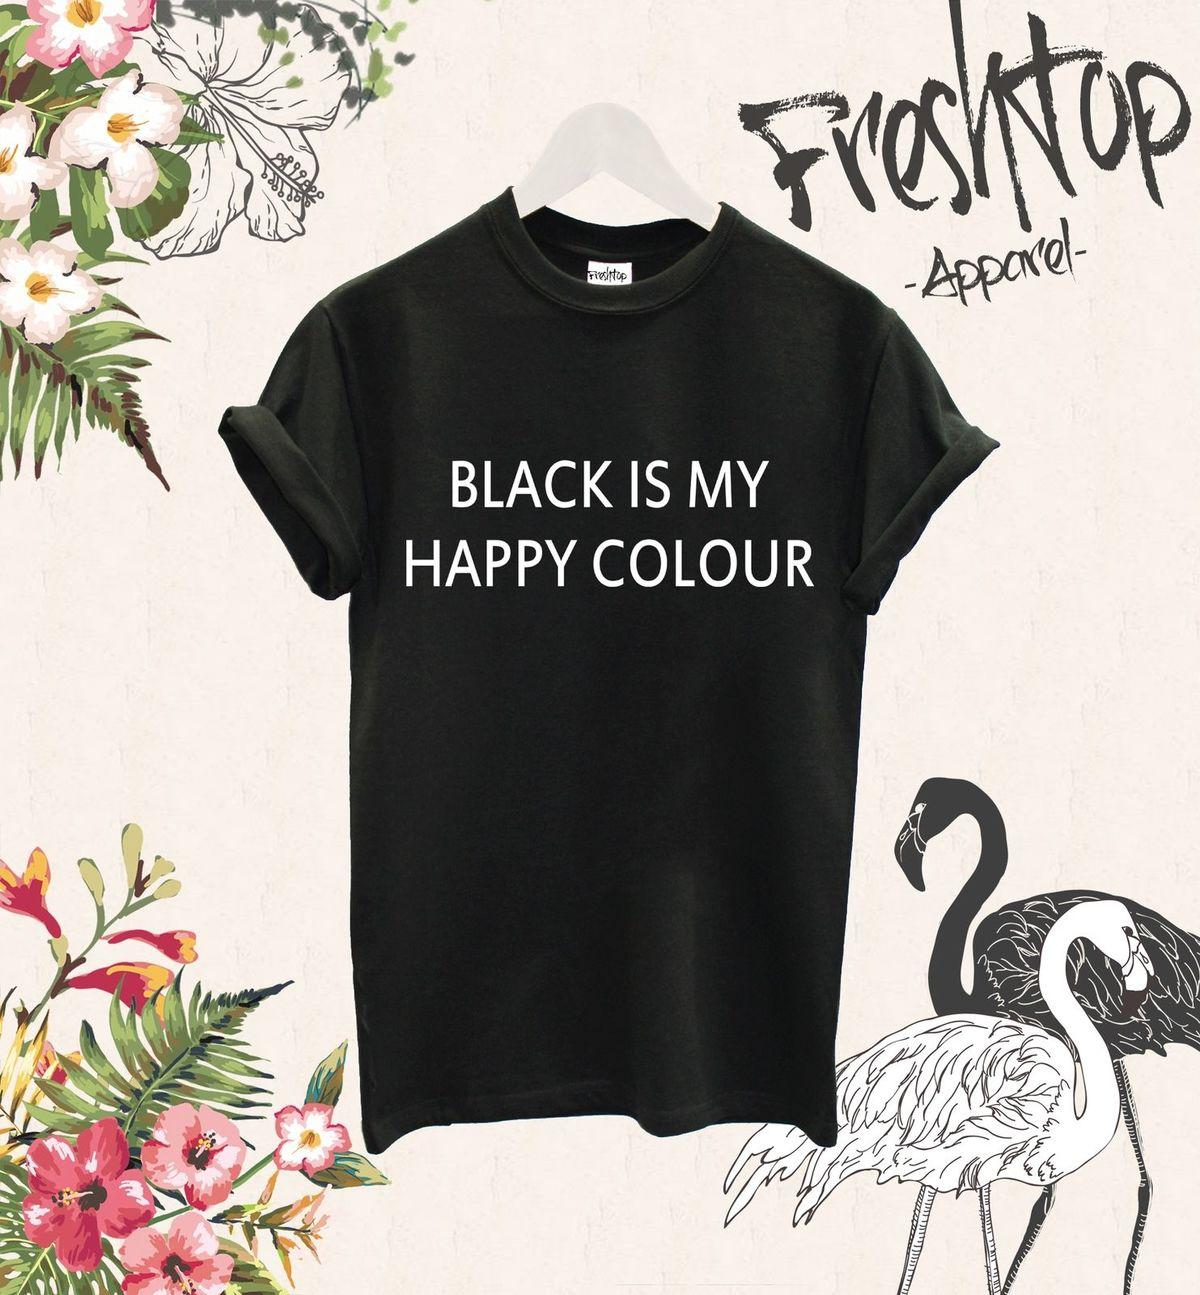 Black Is My Happy Colour T Shirt Vogue Festival Friday Hipster Grunge Rock  Metal Tee Shirt Homme T Shirt Men Funny T Shirt Makes Shirts T From  Baishi9 6f3f5155f35